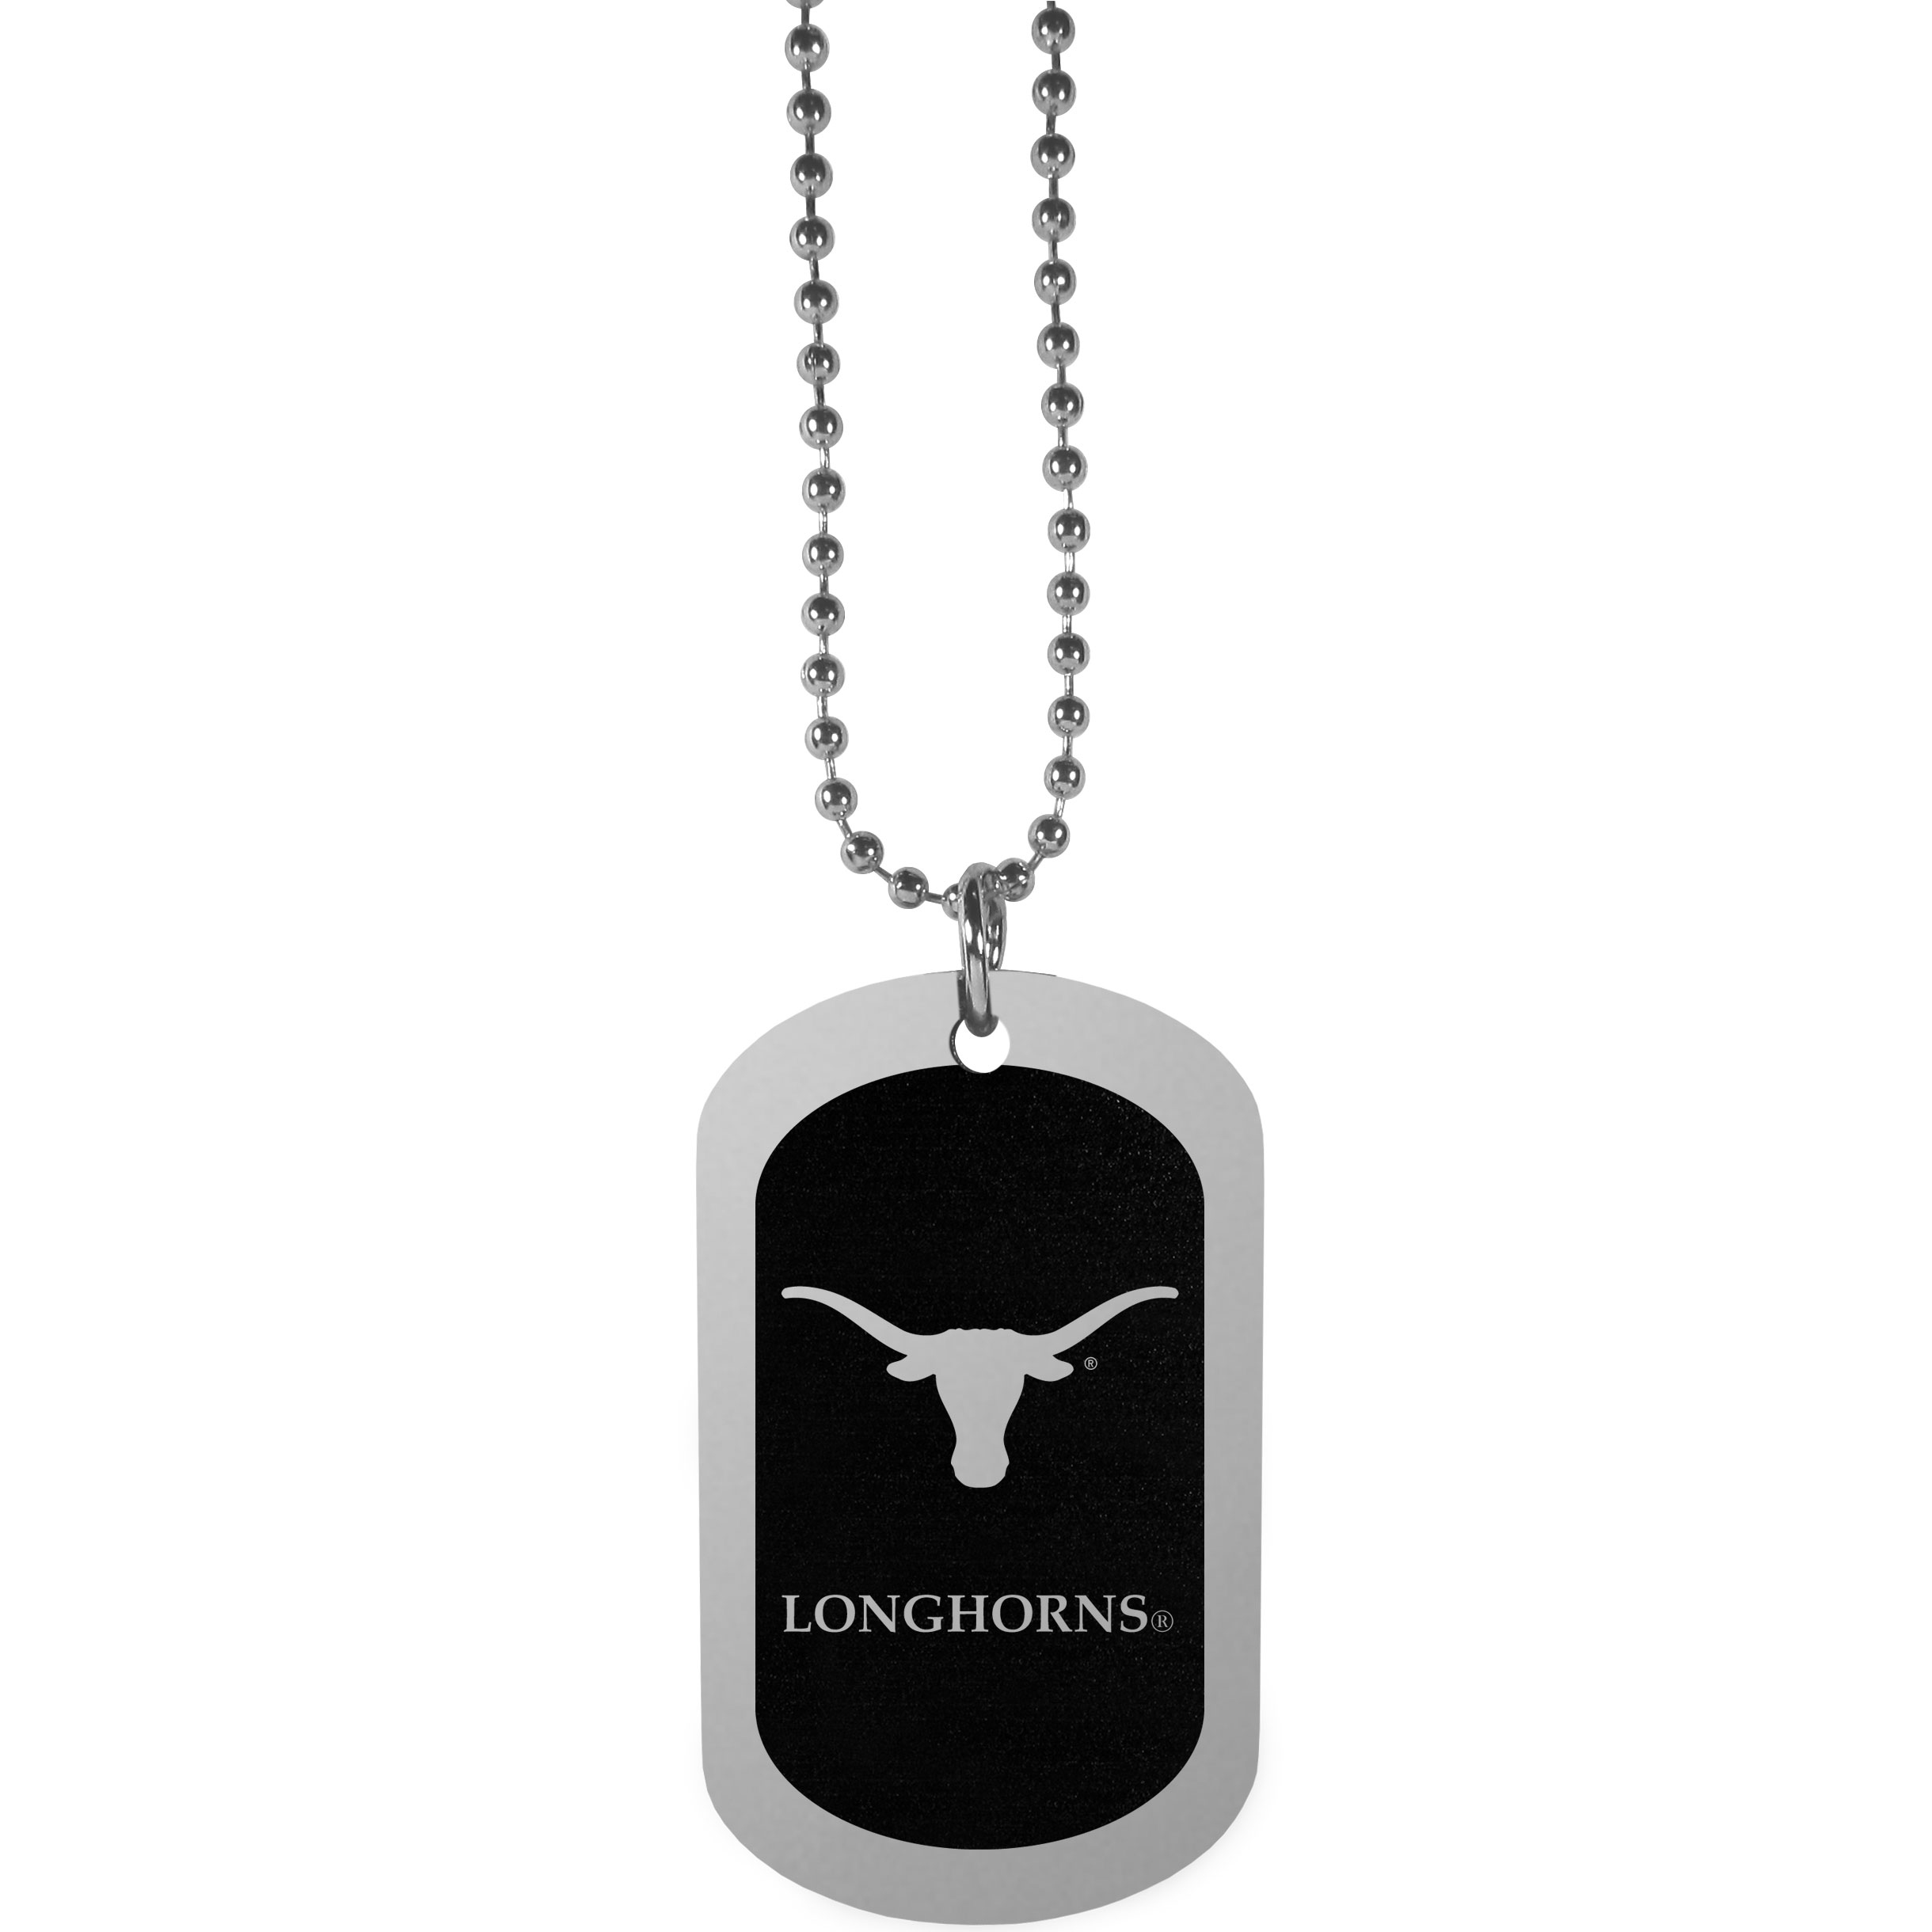 Texas Longhorns Chrome Tag Necklace - Dog tag necklaces are a fashion statement that is here to stay. The sporty version of the classic tag features a black printed over a high polish tag to create a bold and sporty look. The tag comes on a 26 inch ball chain with a ball and joint clasp. Any Texas Longhorns would be proud to wear this attractive fashion accessory.